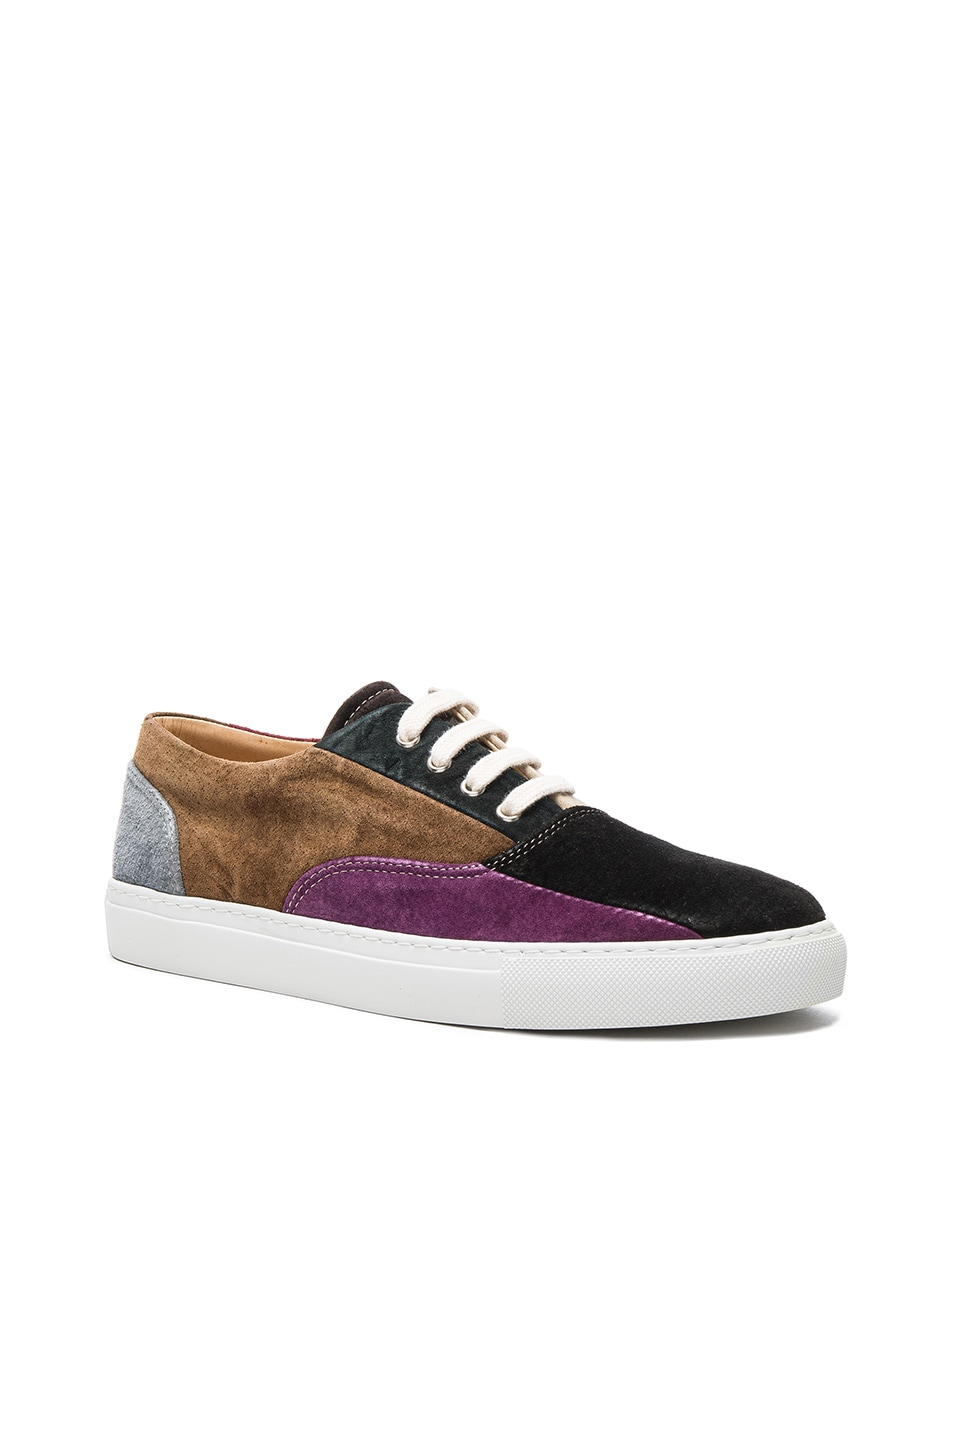 320a73bb74c9 Image 1 of Comme Des Garcons SHIRT Suede Patchwork Sneakers in Mix 1